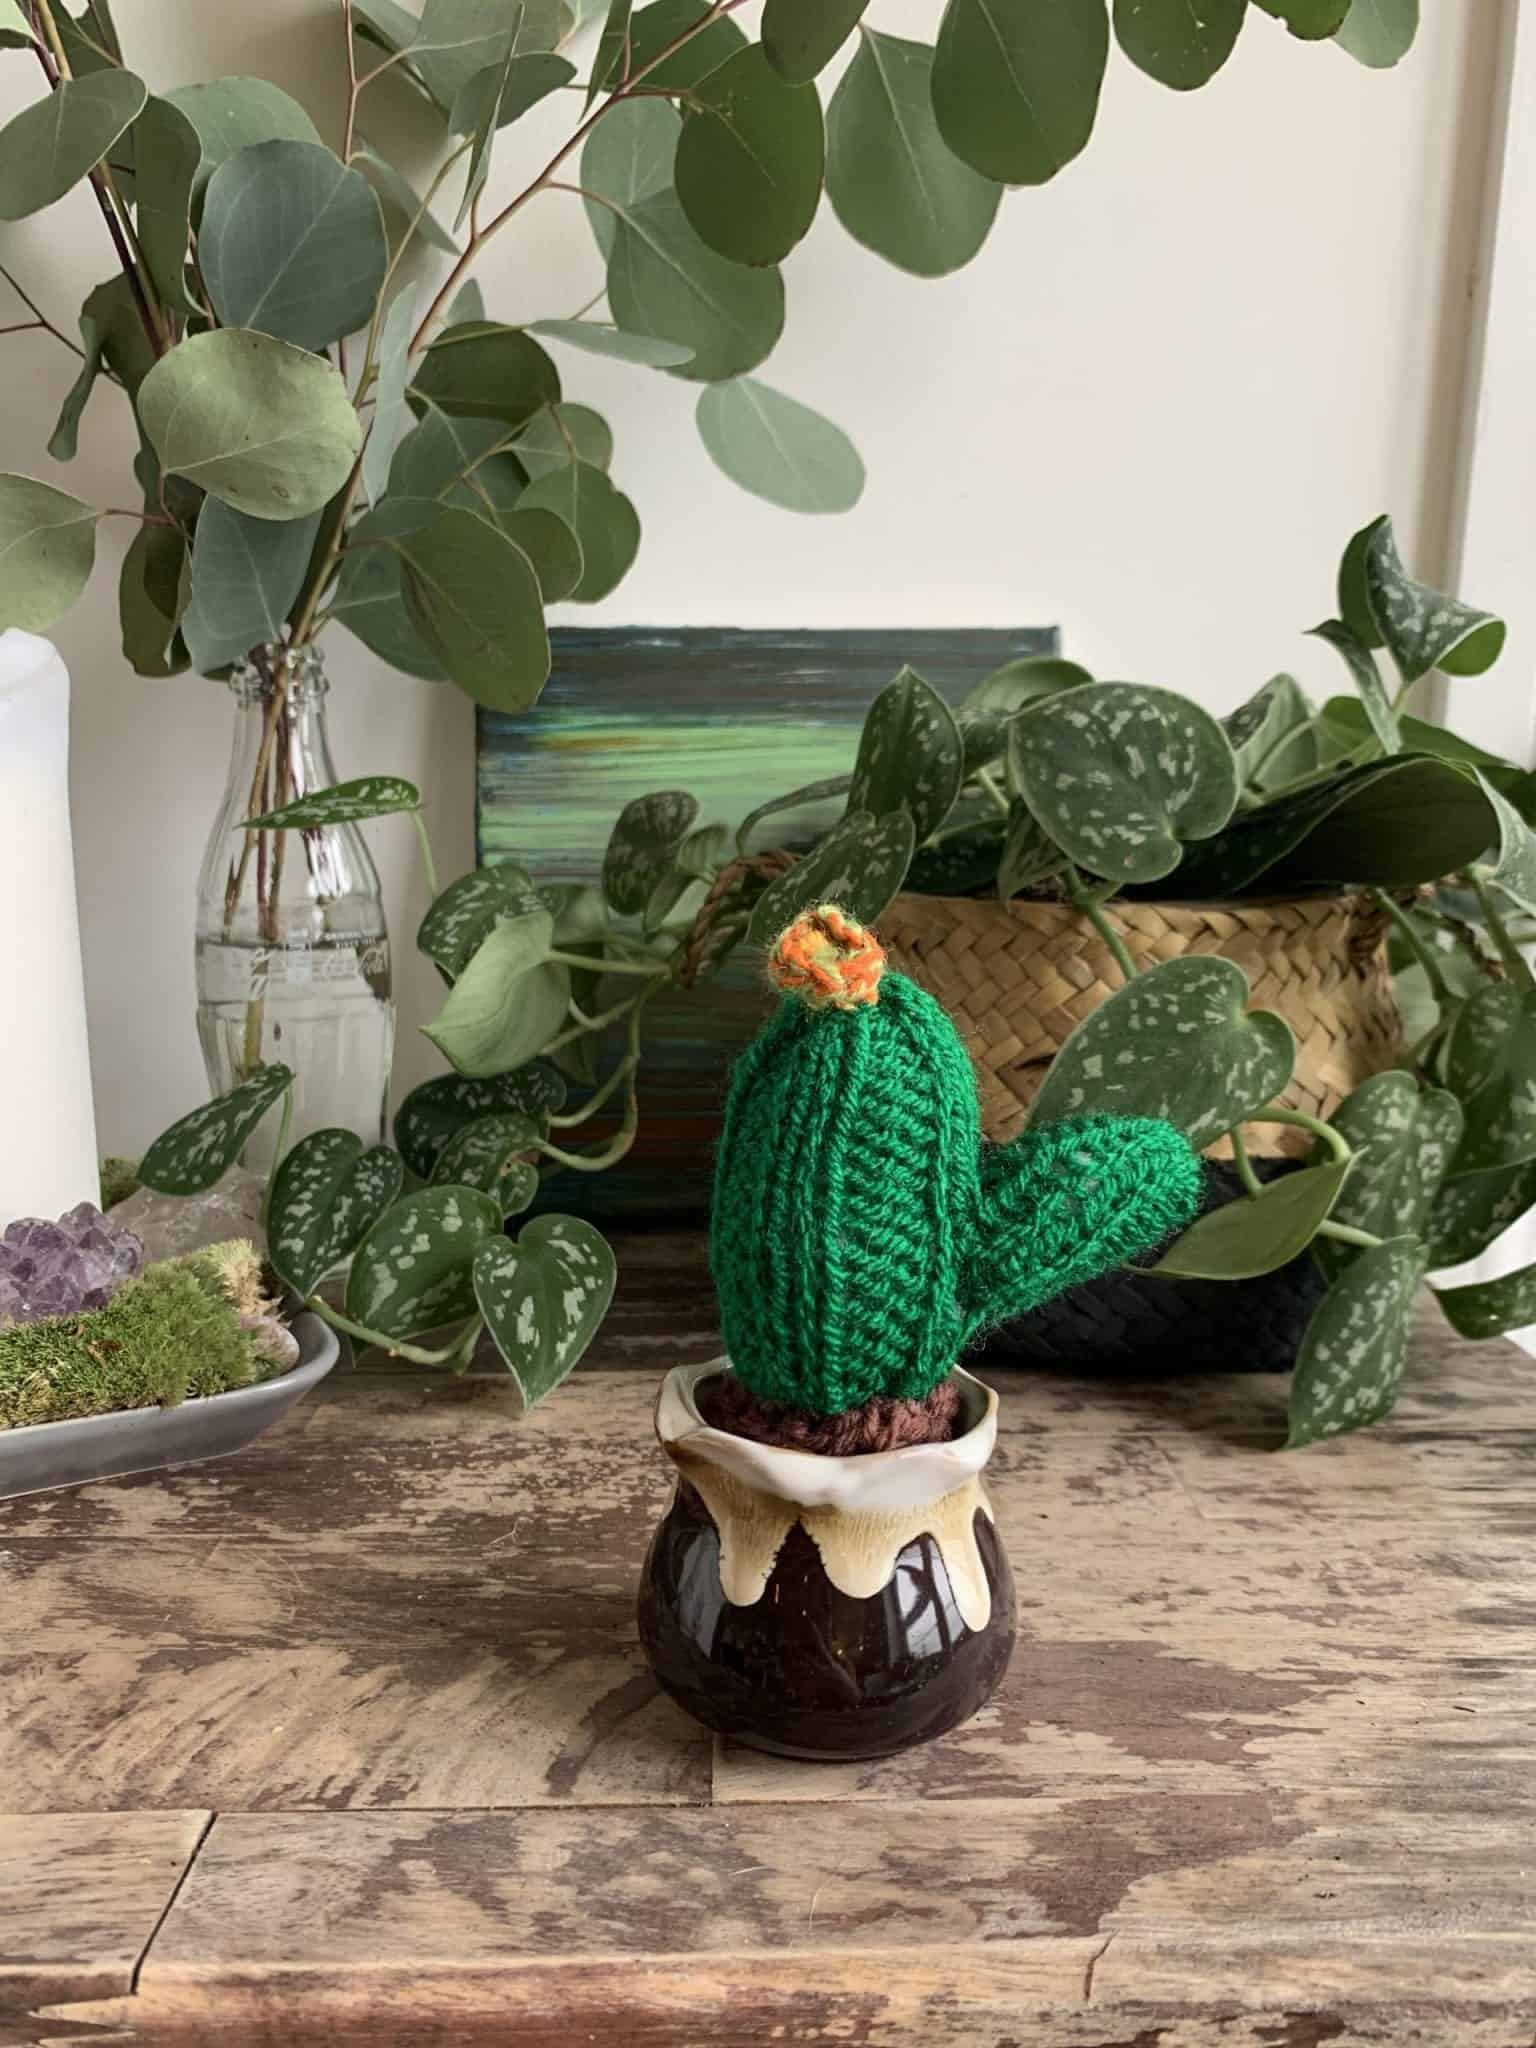 Knitted Cactus - 'Fire Flower'